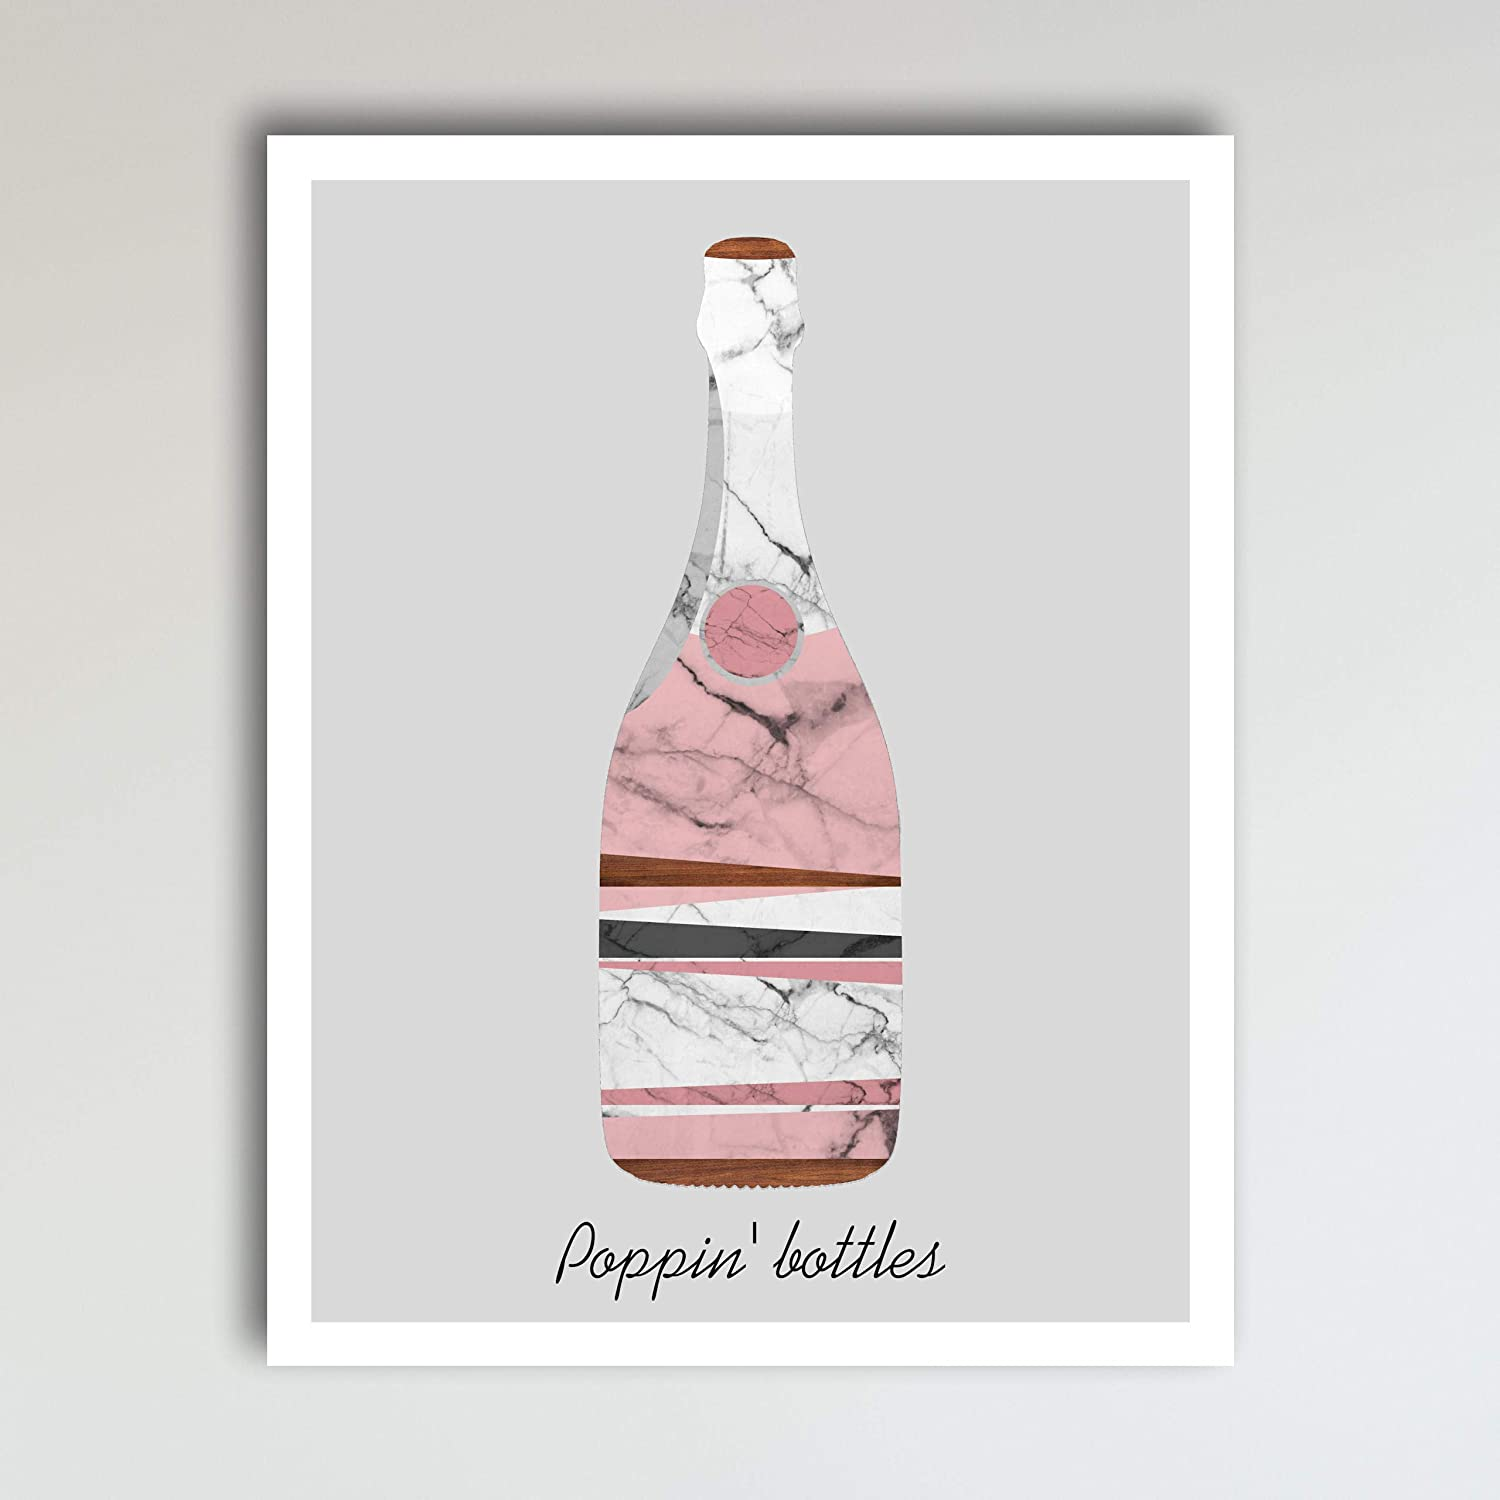 Amazon Com Poppin Bottles Marble Champagne Art Print Poster Champagne Fun Home Kitchen Wall Art Home Decor 11x14 Inches Unframed Handmade